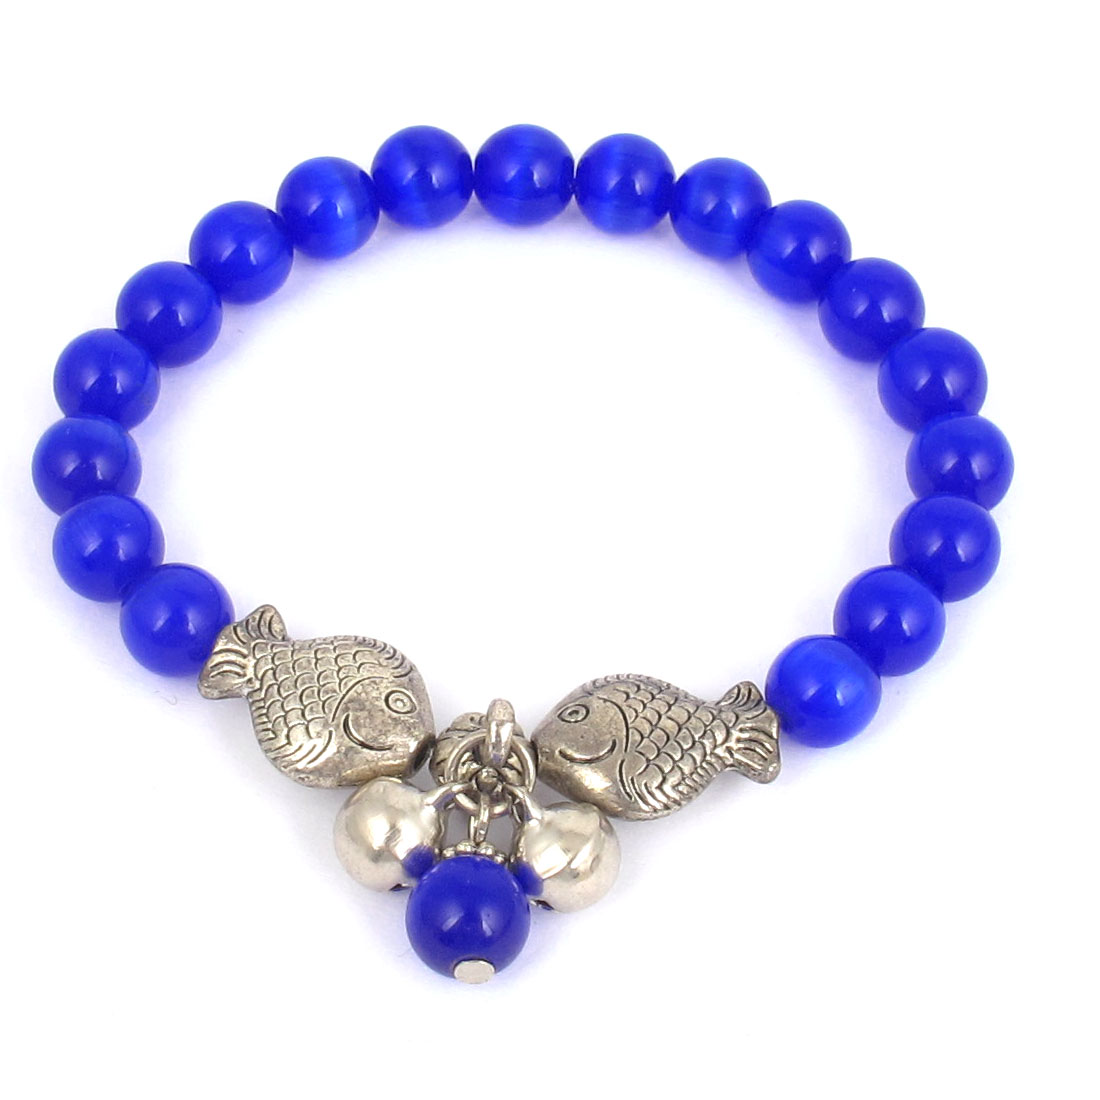 Fish Detail Round Opal Bead Wrist Ornament Bangle Bracelet Dark Blue Silver Tone for Women